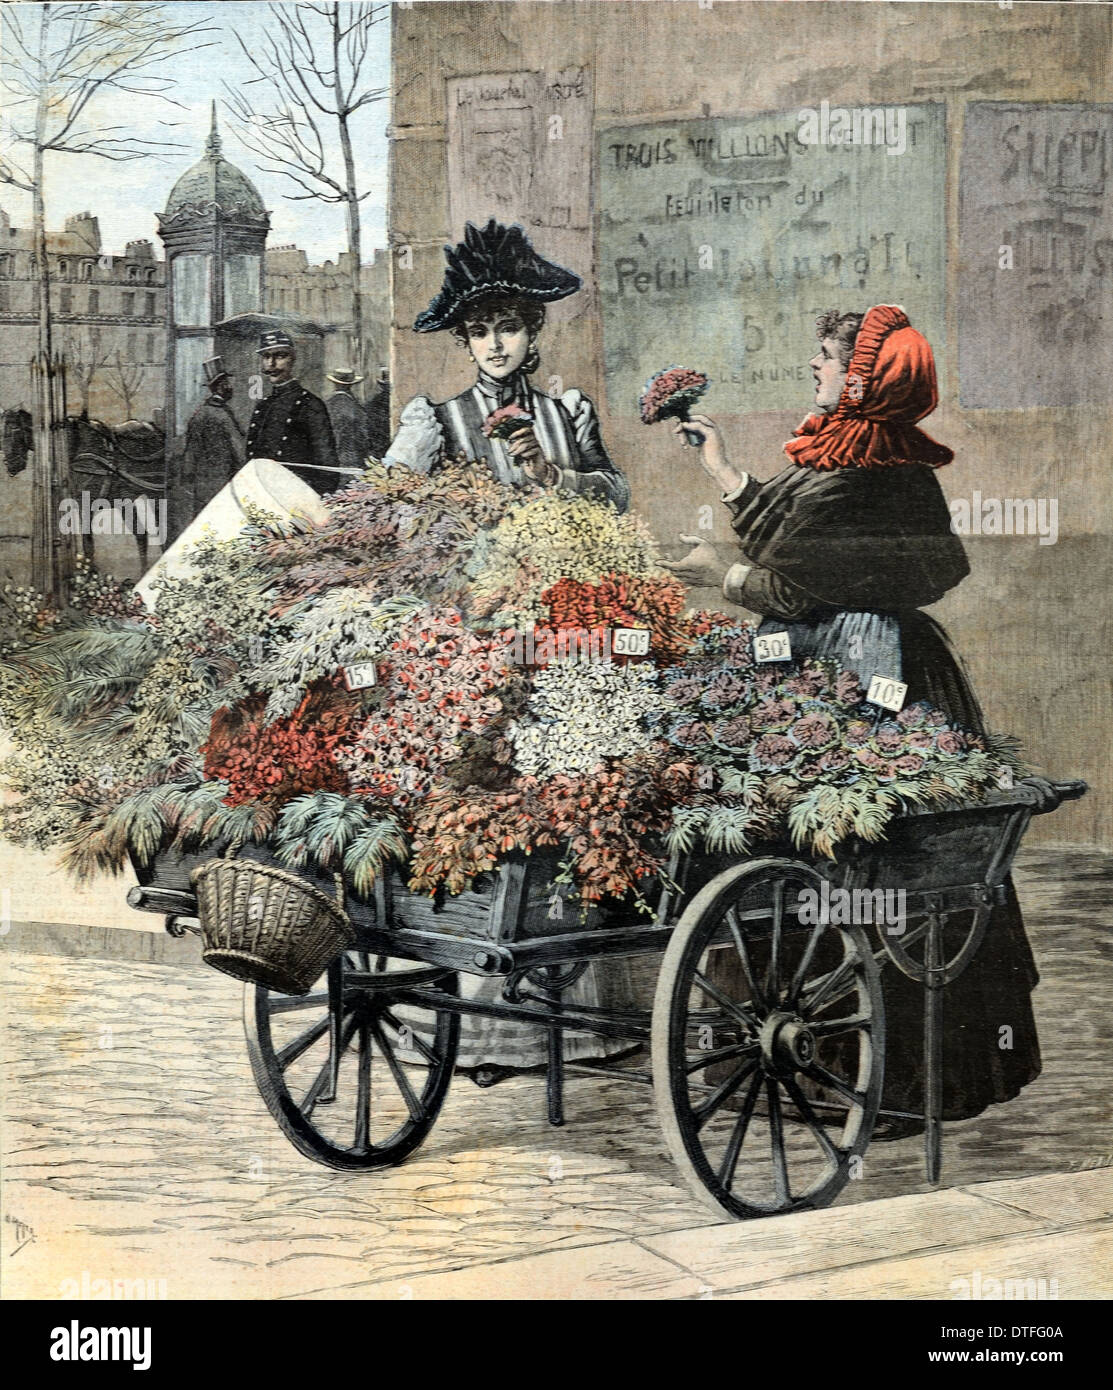 Barrow Girl Selling Flowers Street Seller Costermonger Or